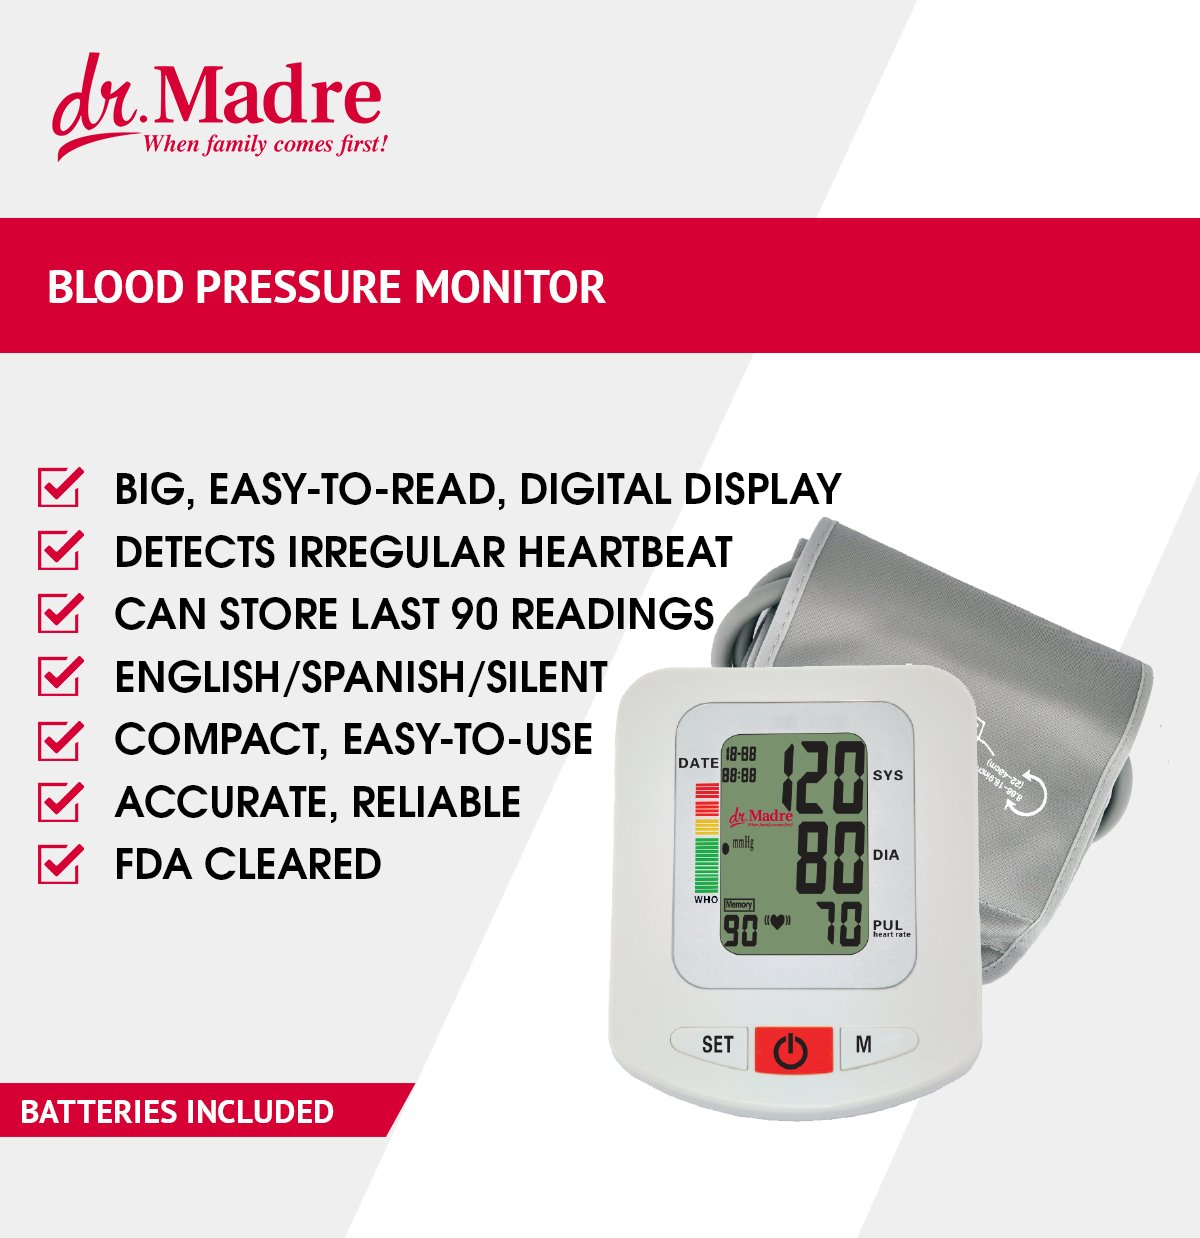 Dr. Madre Blood Pressure Monitor with Adjustable Cuff 9-16 inch Upper Arms - Accurate Simple Automatic One Touch Talking with Time & Date Stamp and 90 Memory Recall